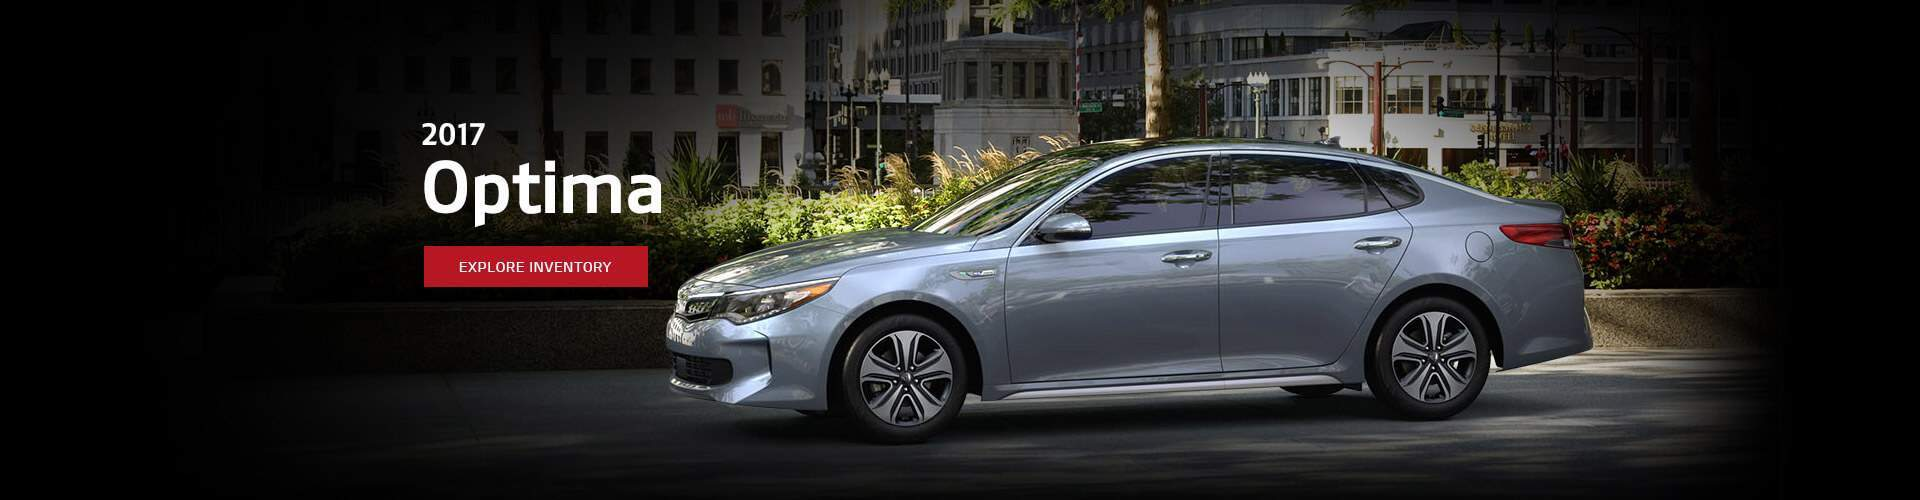 New Kia Optima at Kia of Easton